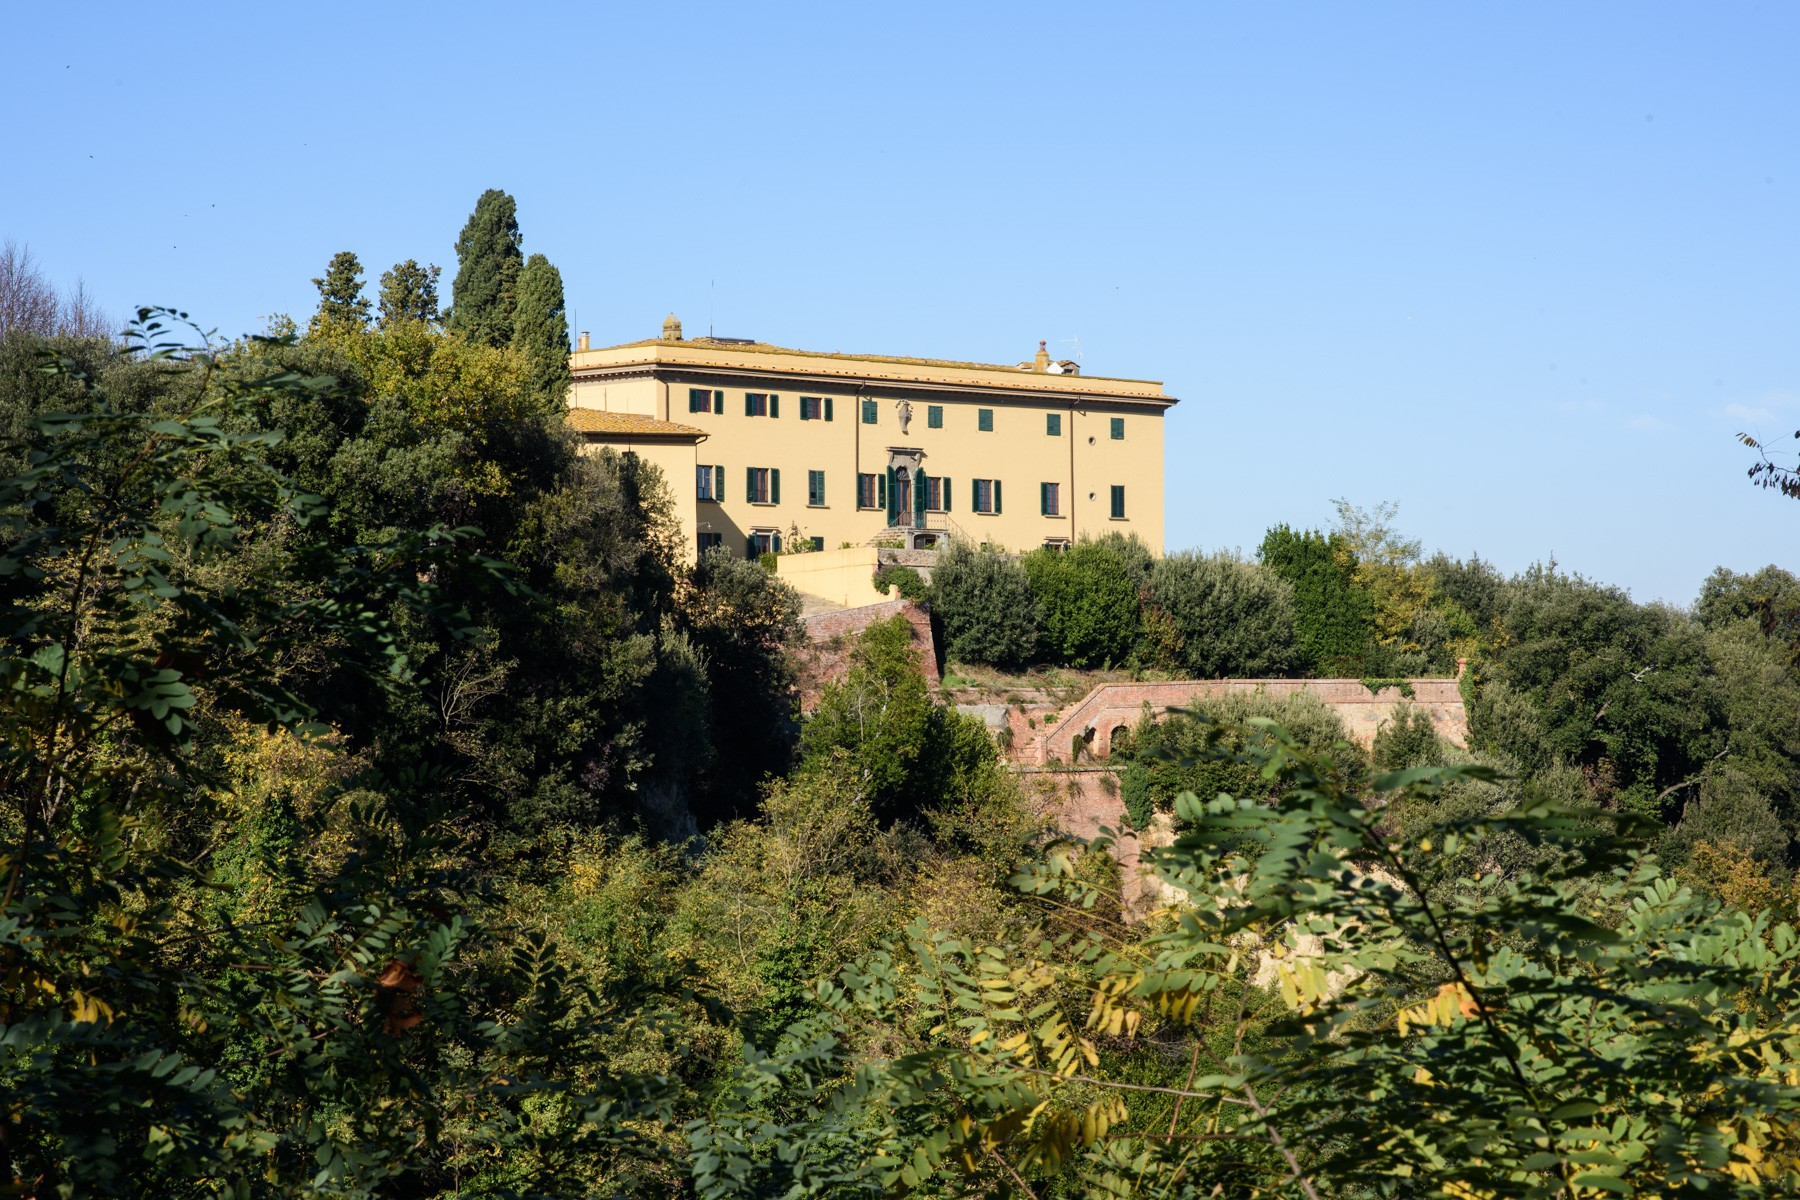 Montaione via collegalli sotheby s international realty - Tuscany sotheby s international realty ...